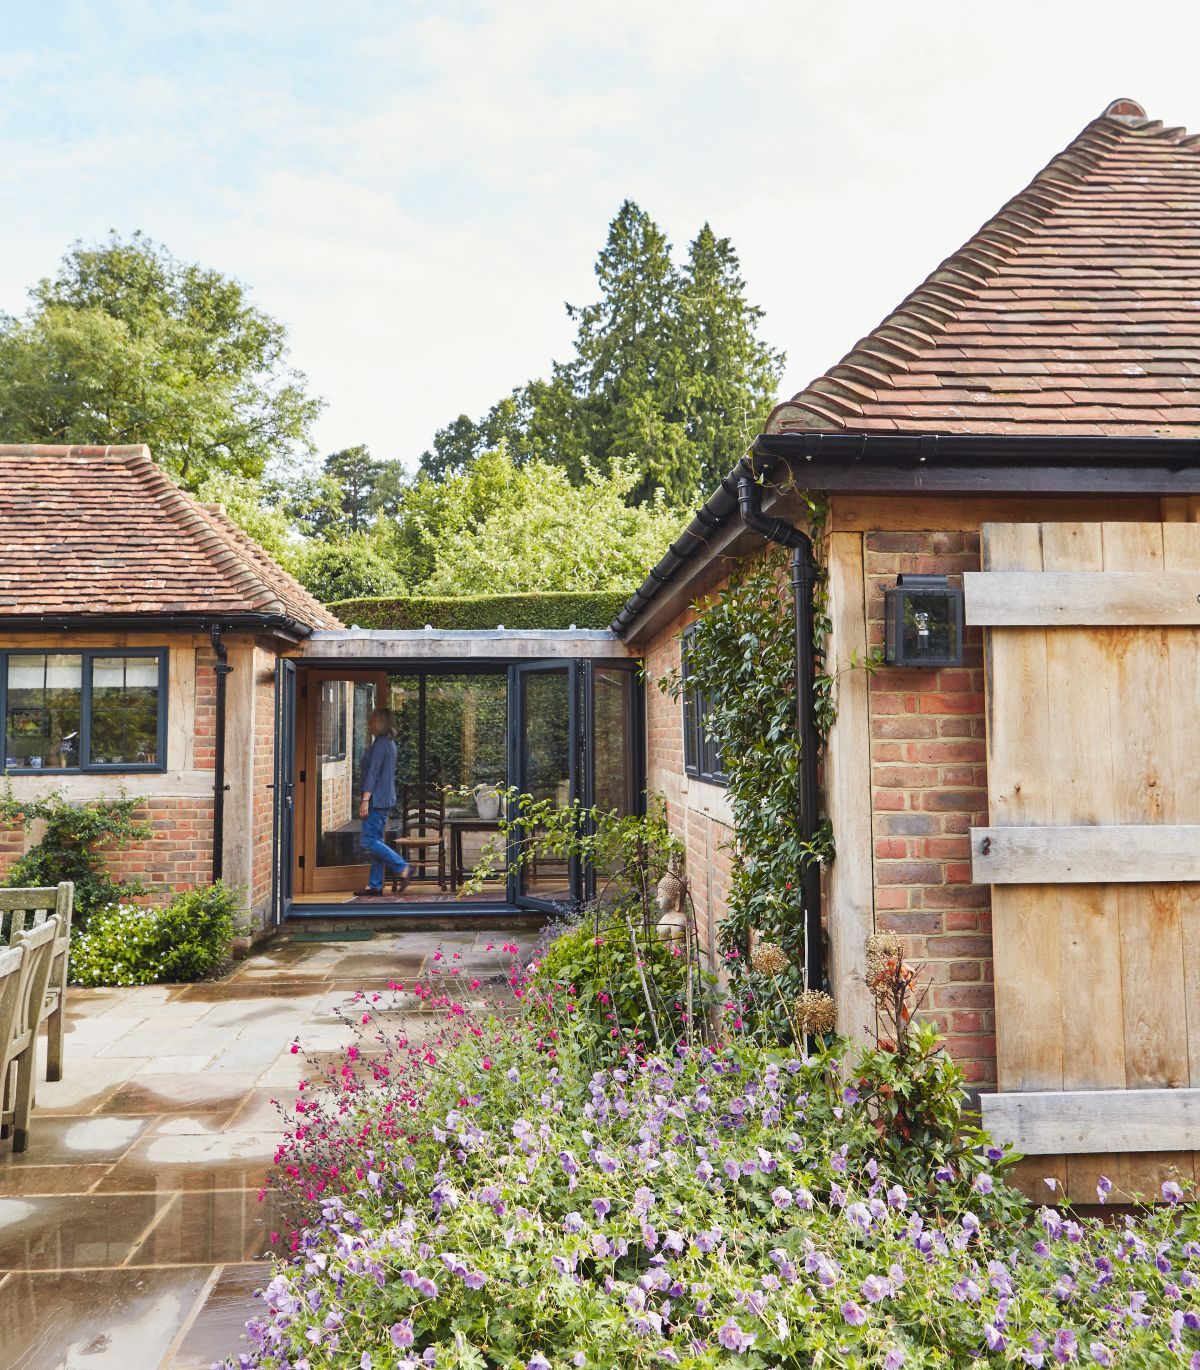 House Extension Ideas From £30,000 To £50,000: From